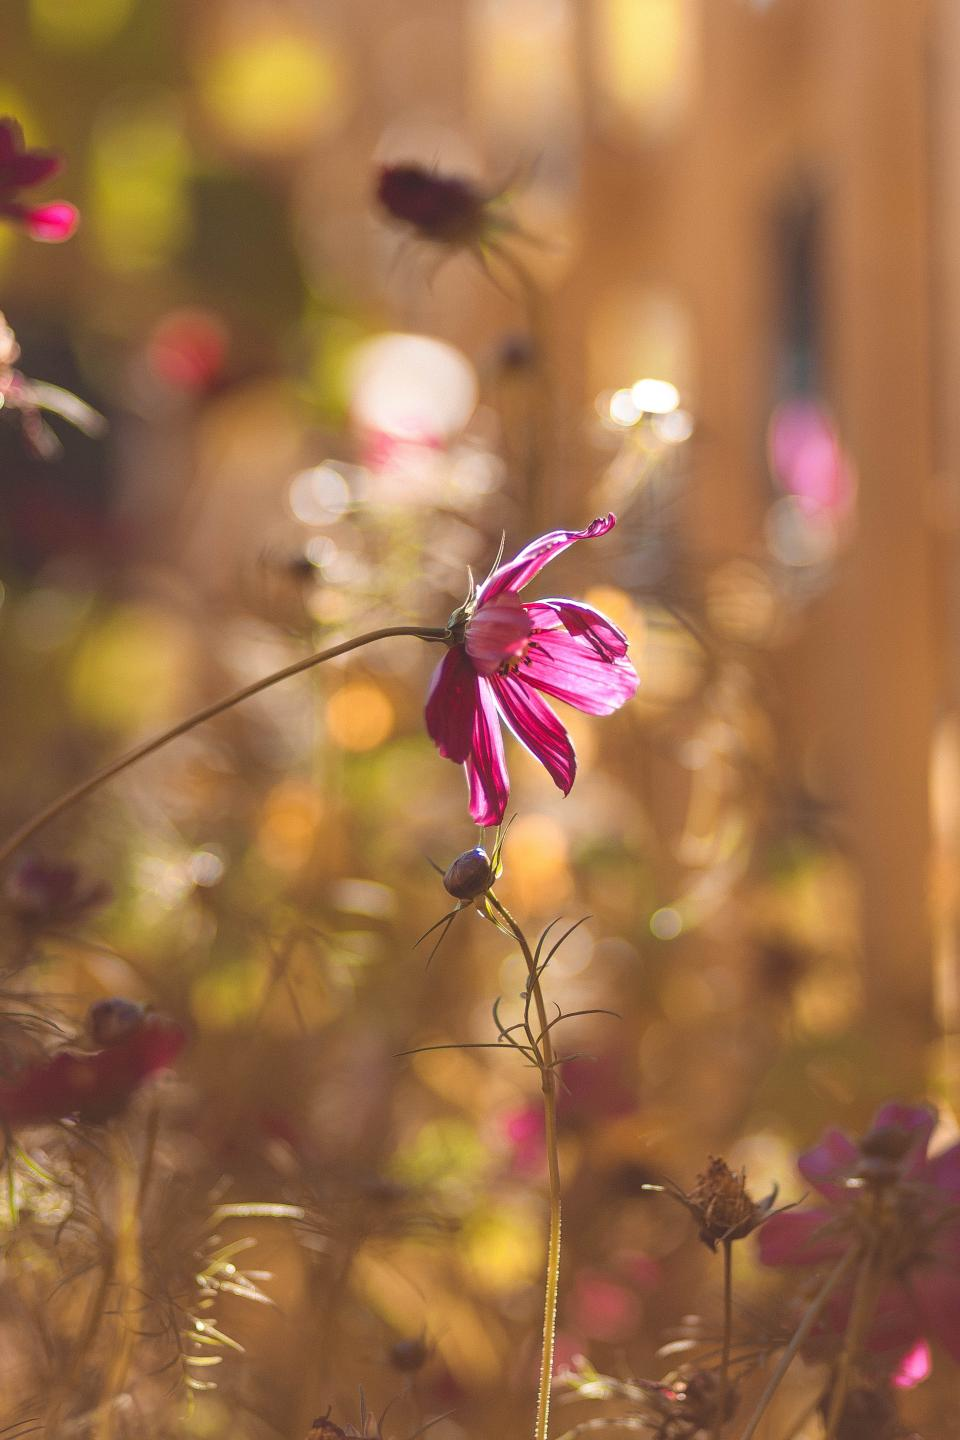 flowers nature blossoms branches bed field stems stalk petals purple buds still bokeh outdoors garden